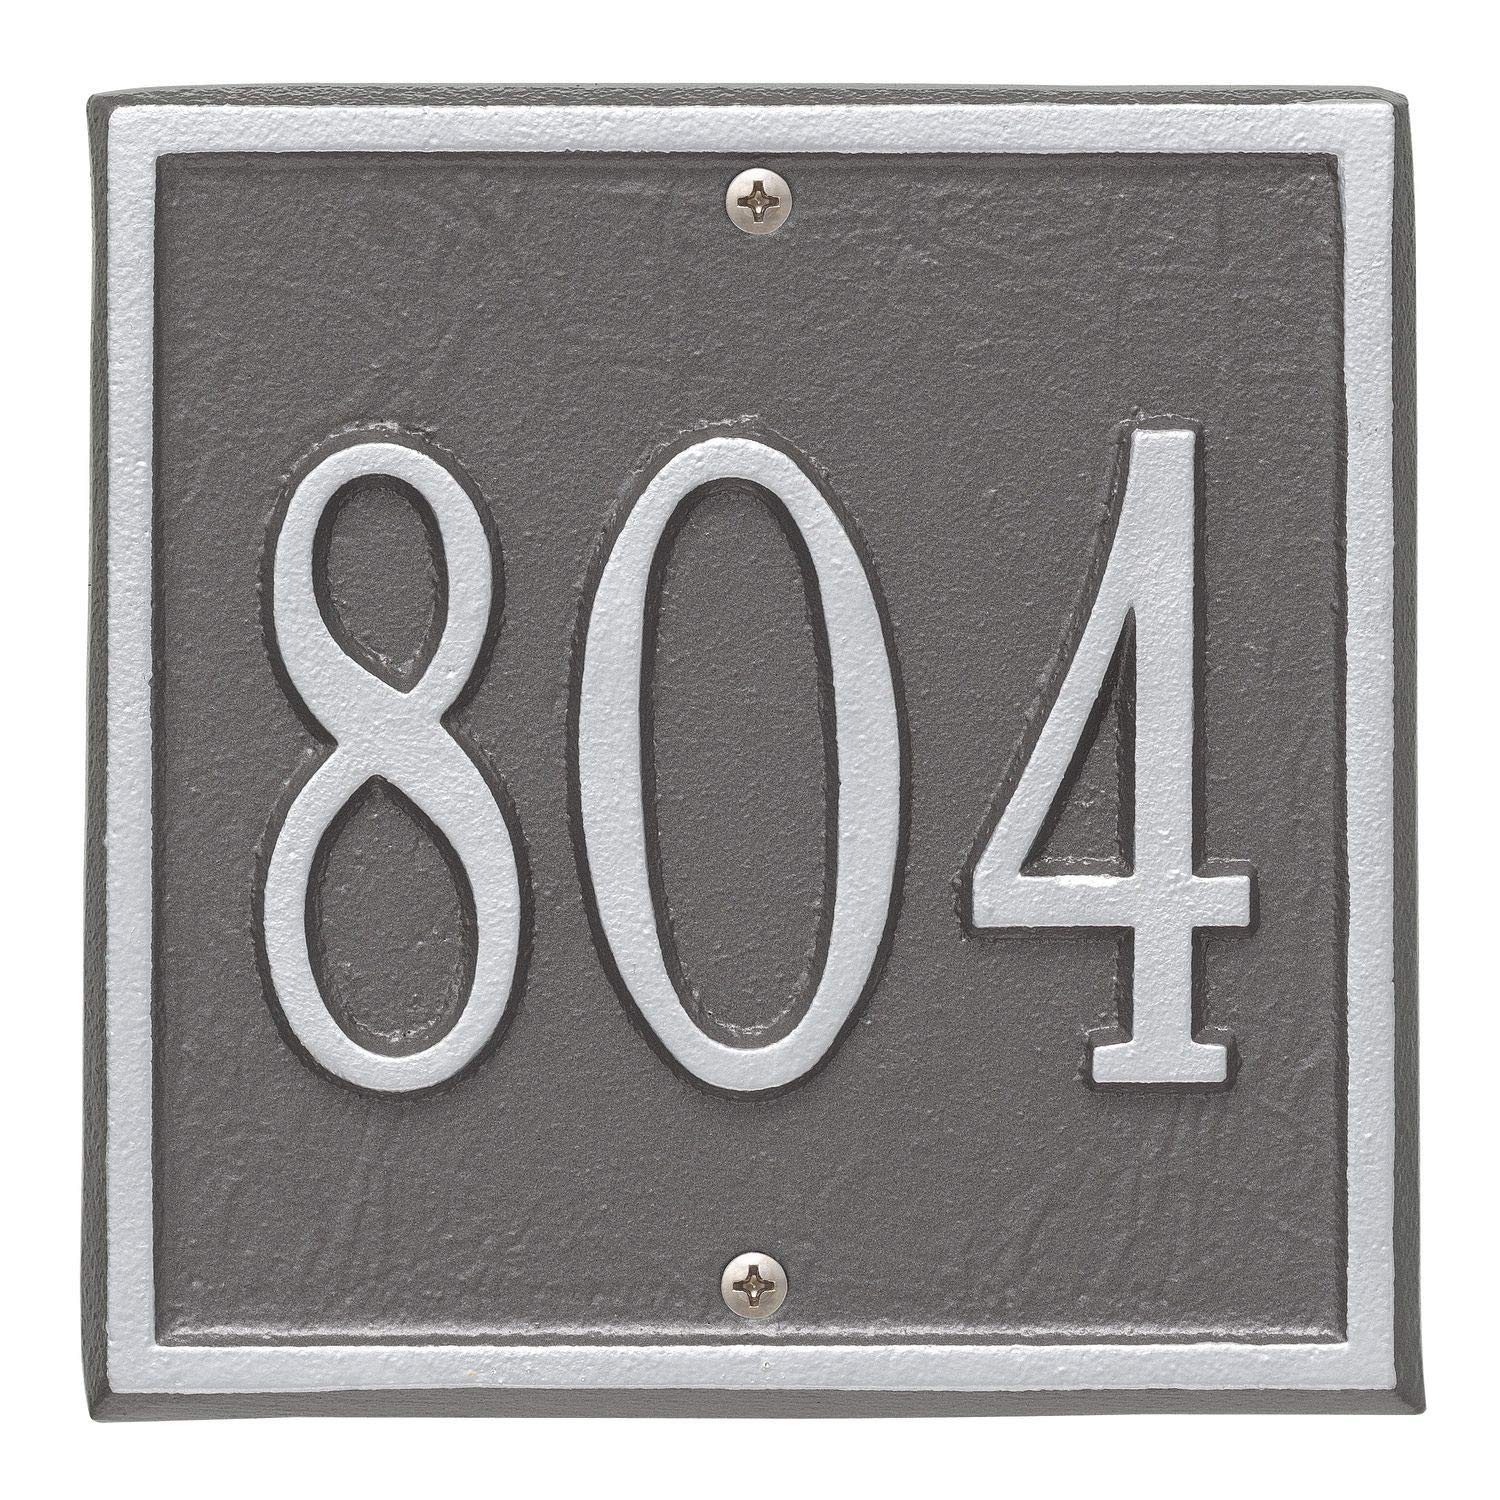 Whitehall Personalized Cast Metal Address Plaque - Square 6'' x 6'' House Number Sign - Allows Special Characters - Pewter/Silver